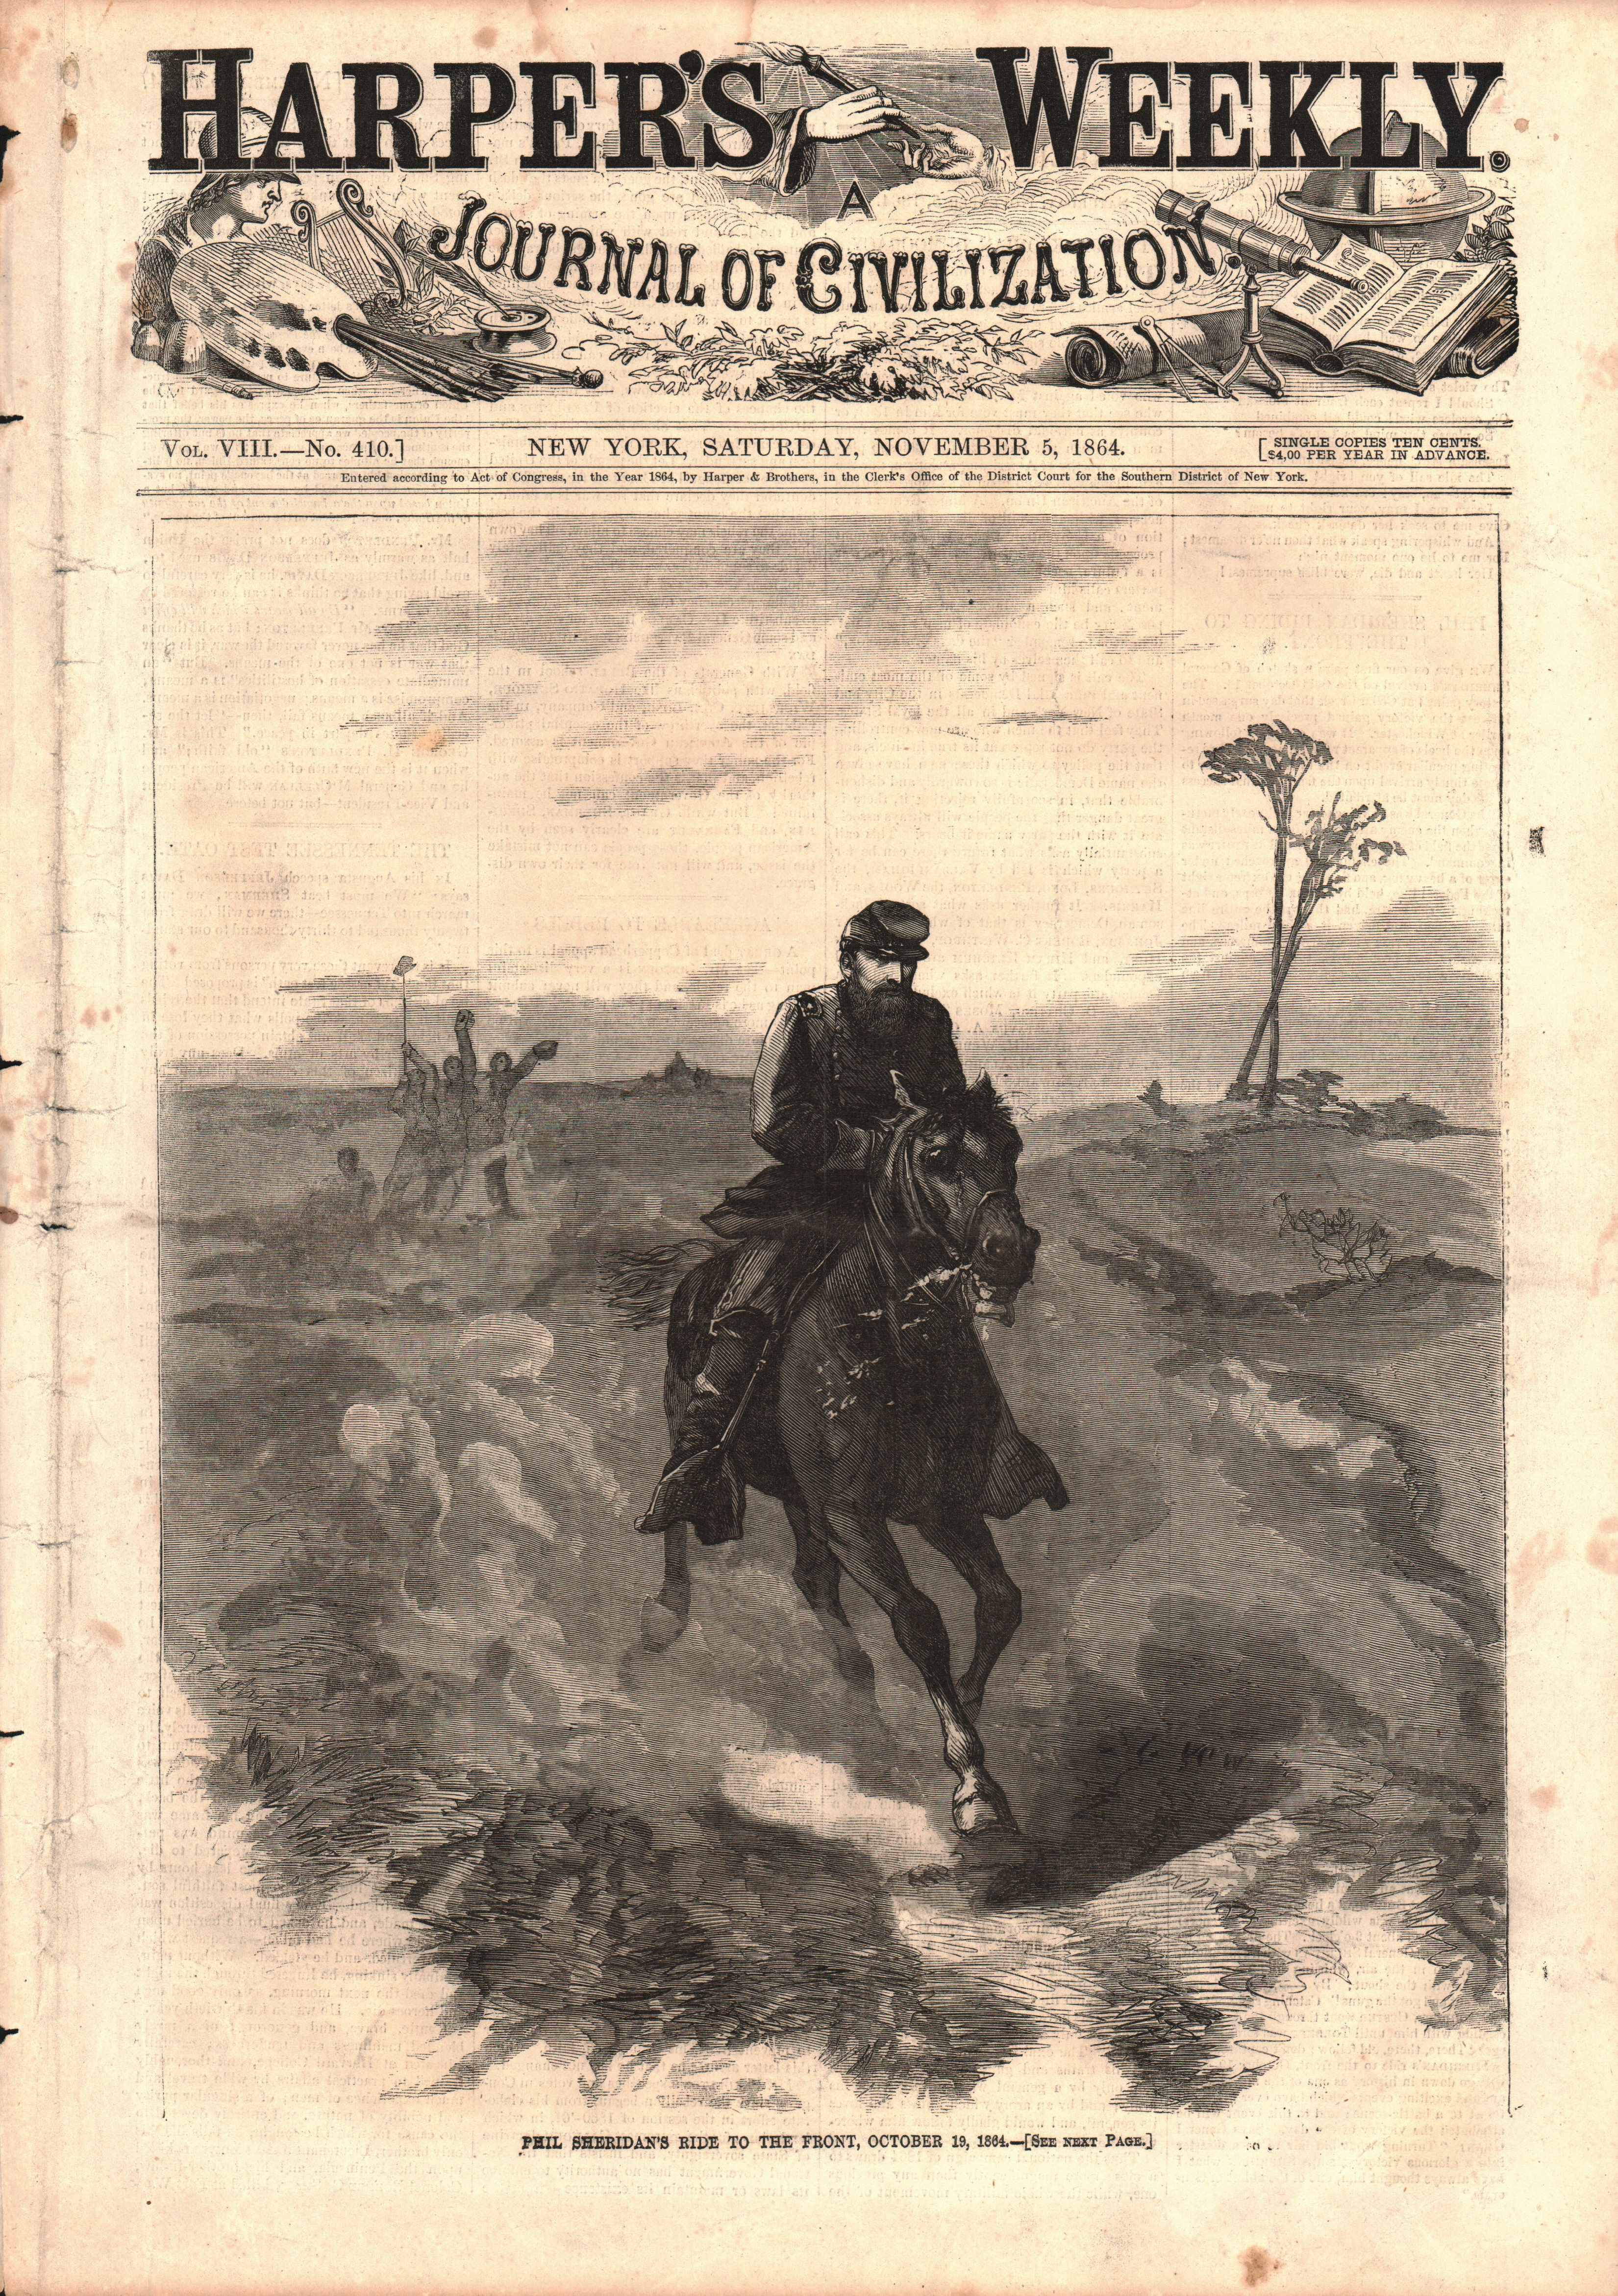 Phil Sheridan's Ride to the Front